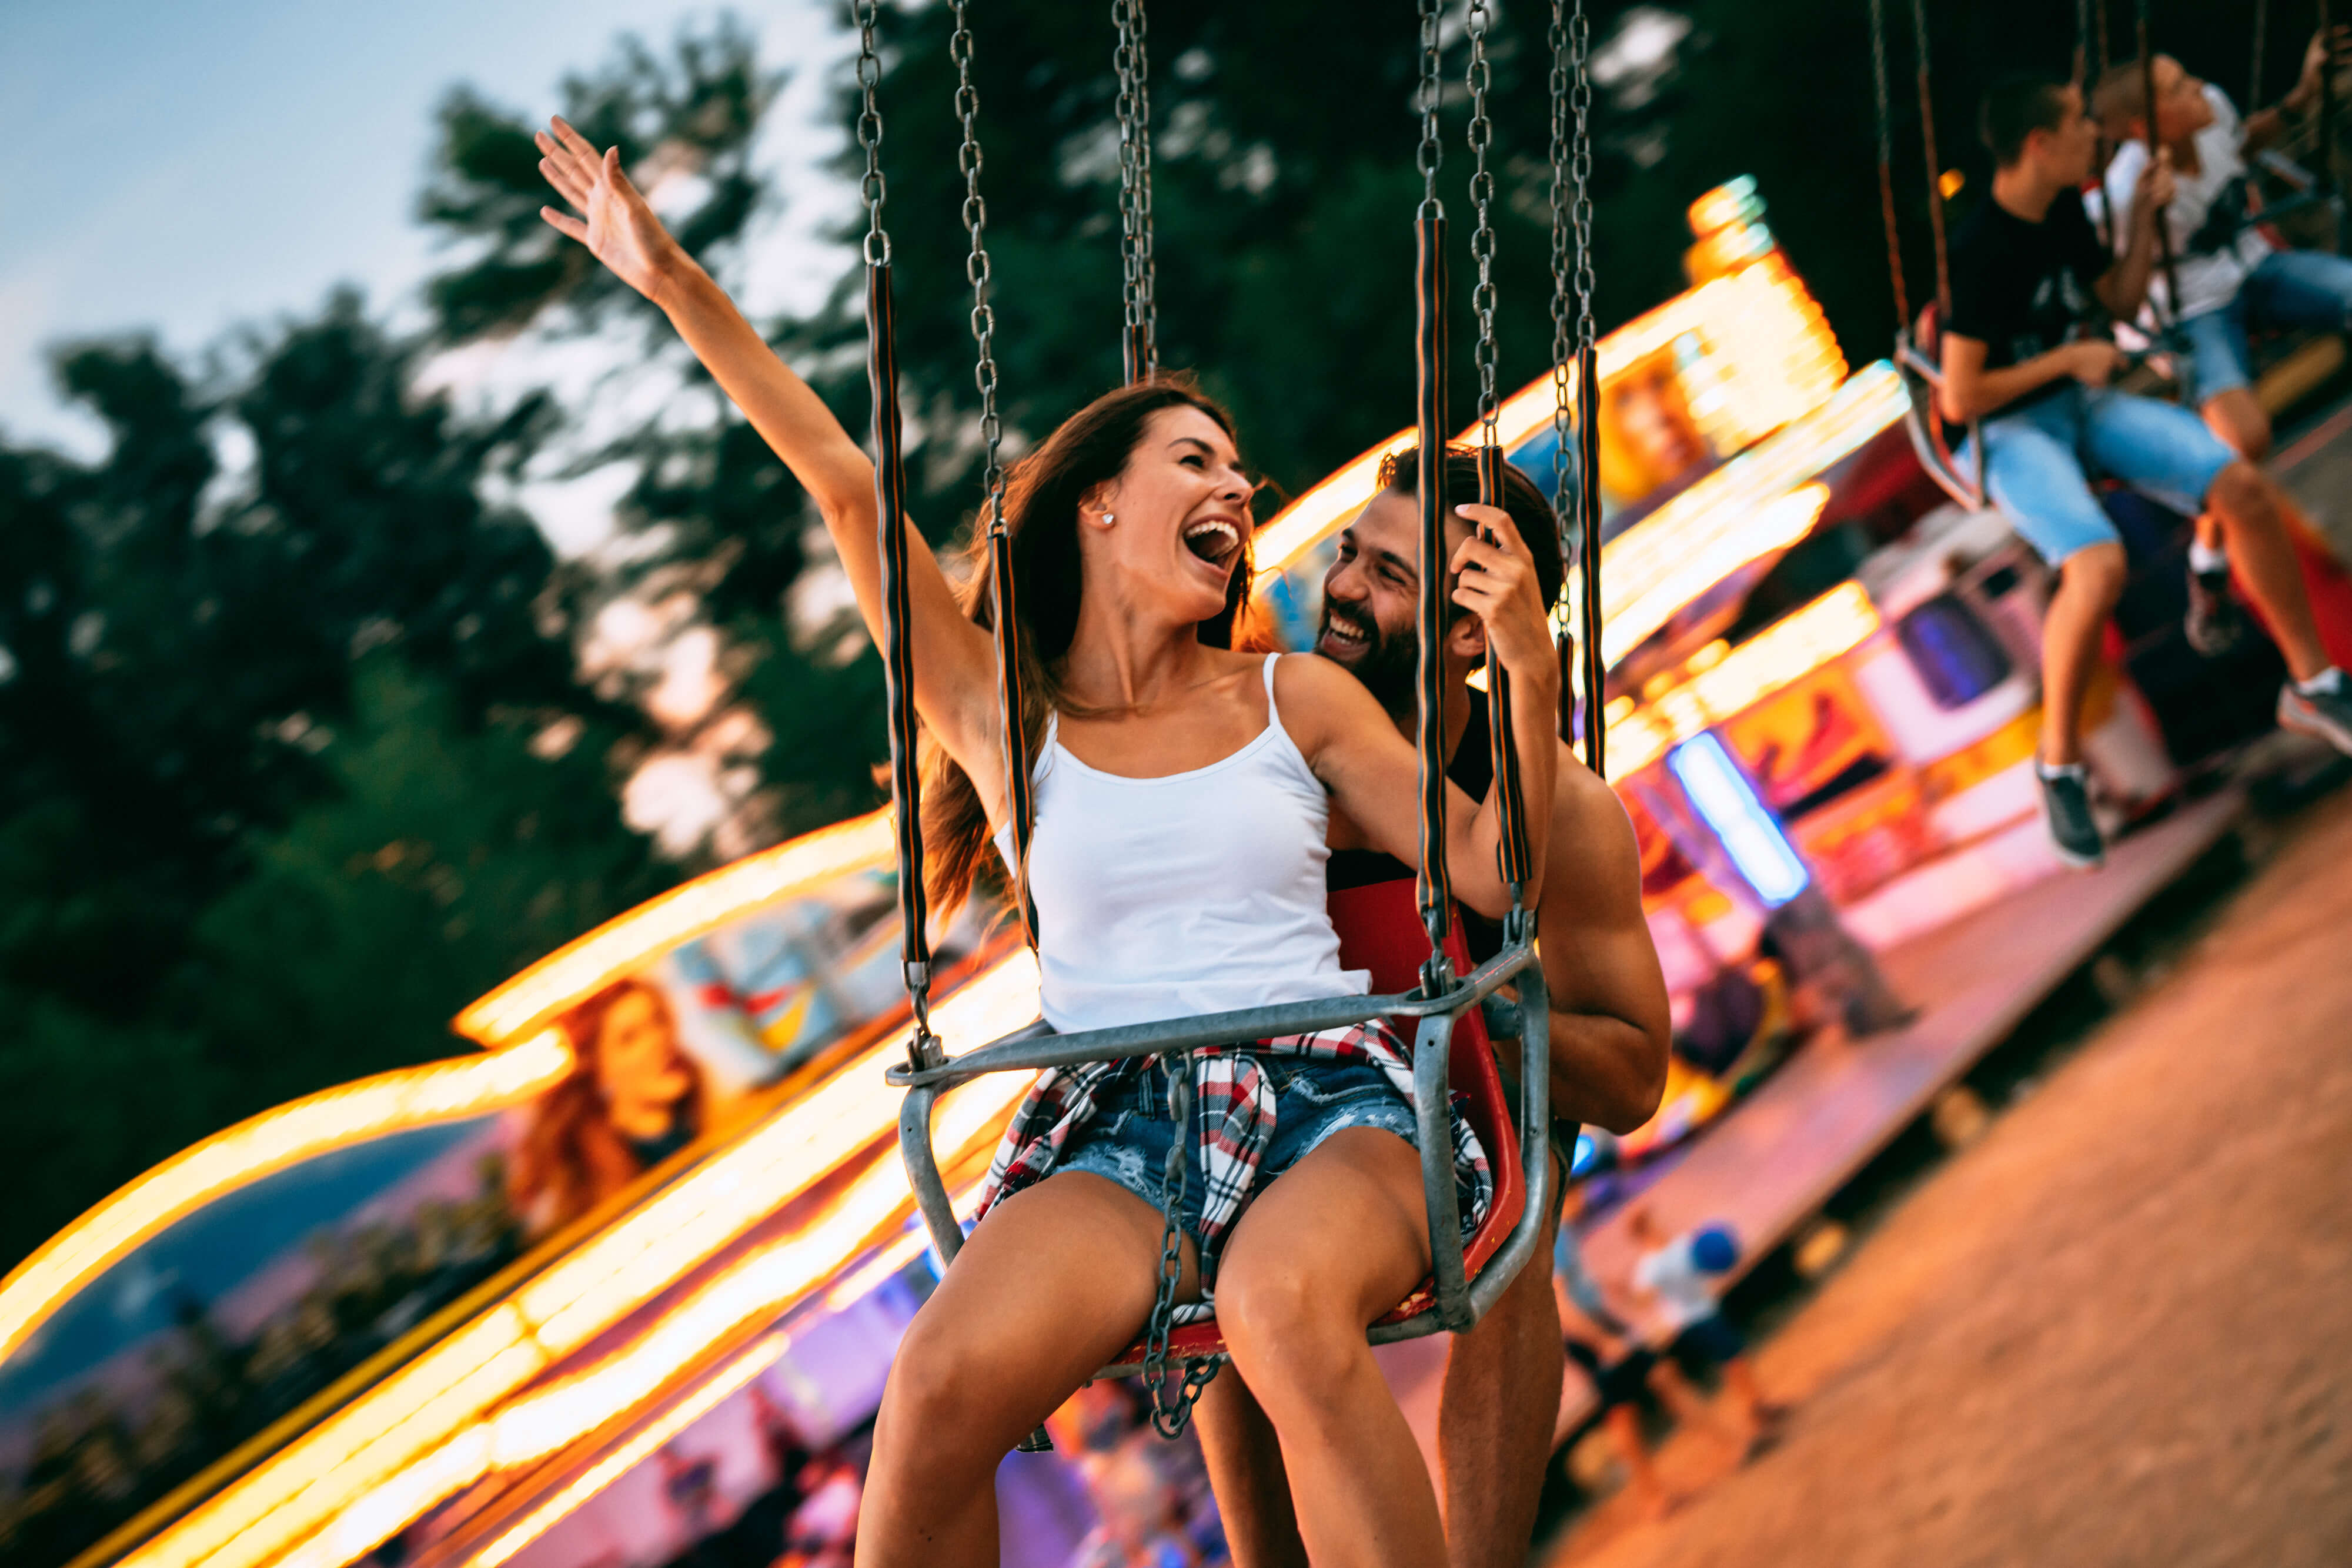 Young Couple Enjoying On The Swings